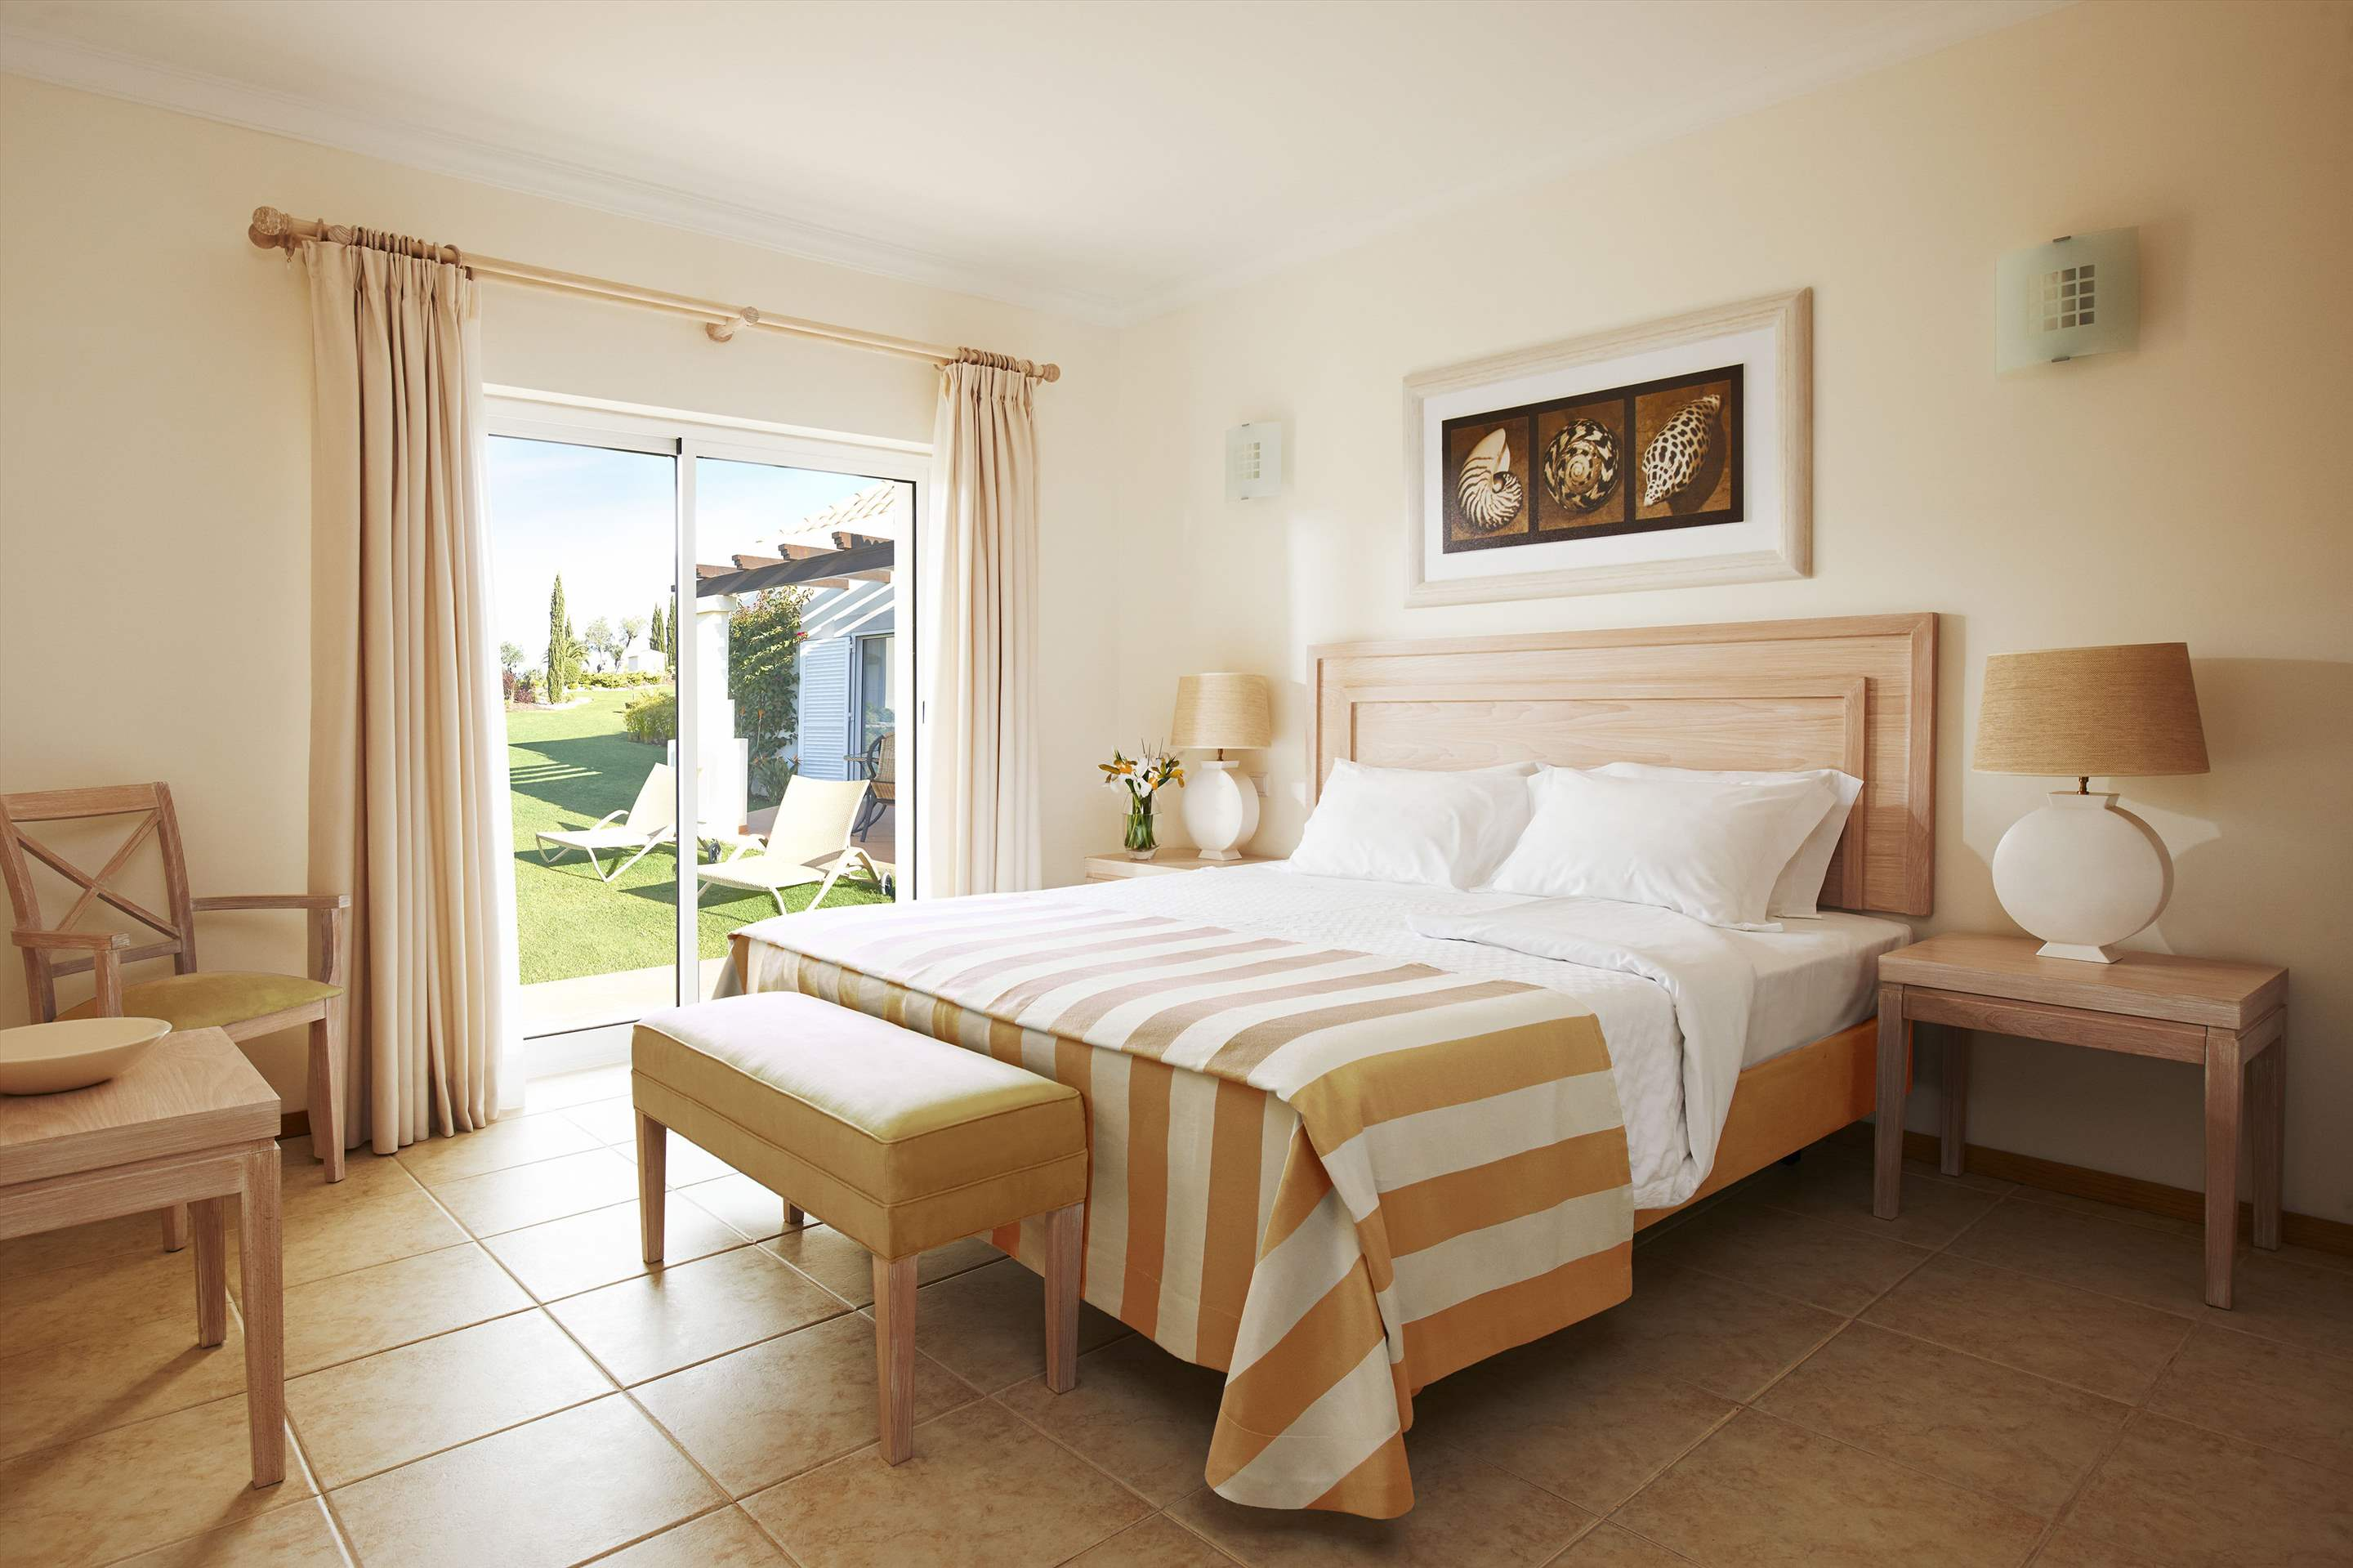 Vale d'Oliveiras 2 Bed Suite Pool View , Bed & Breakfast, 2 bedroom apartment in Vale d'Oliveiras Resort & Spa, Algarve Photo #5